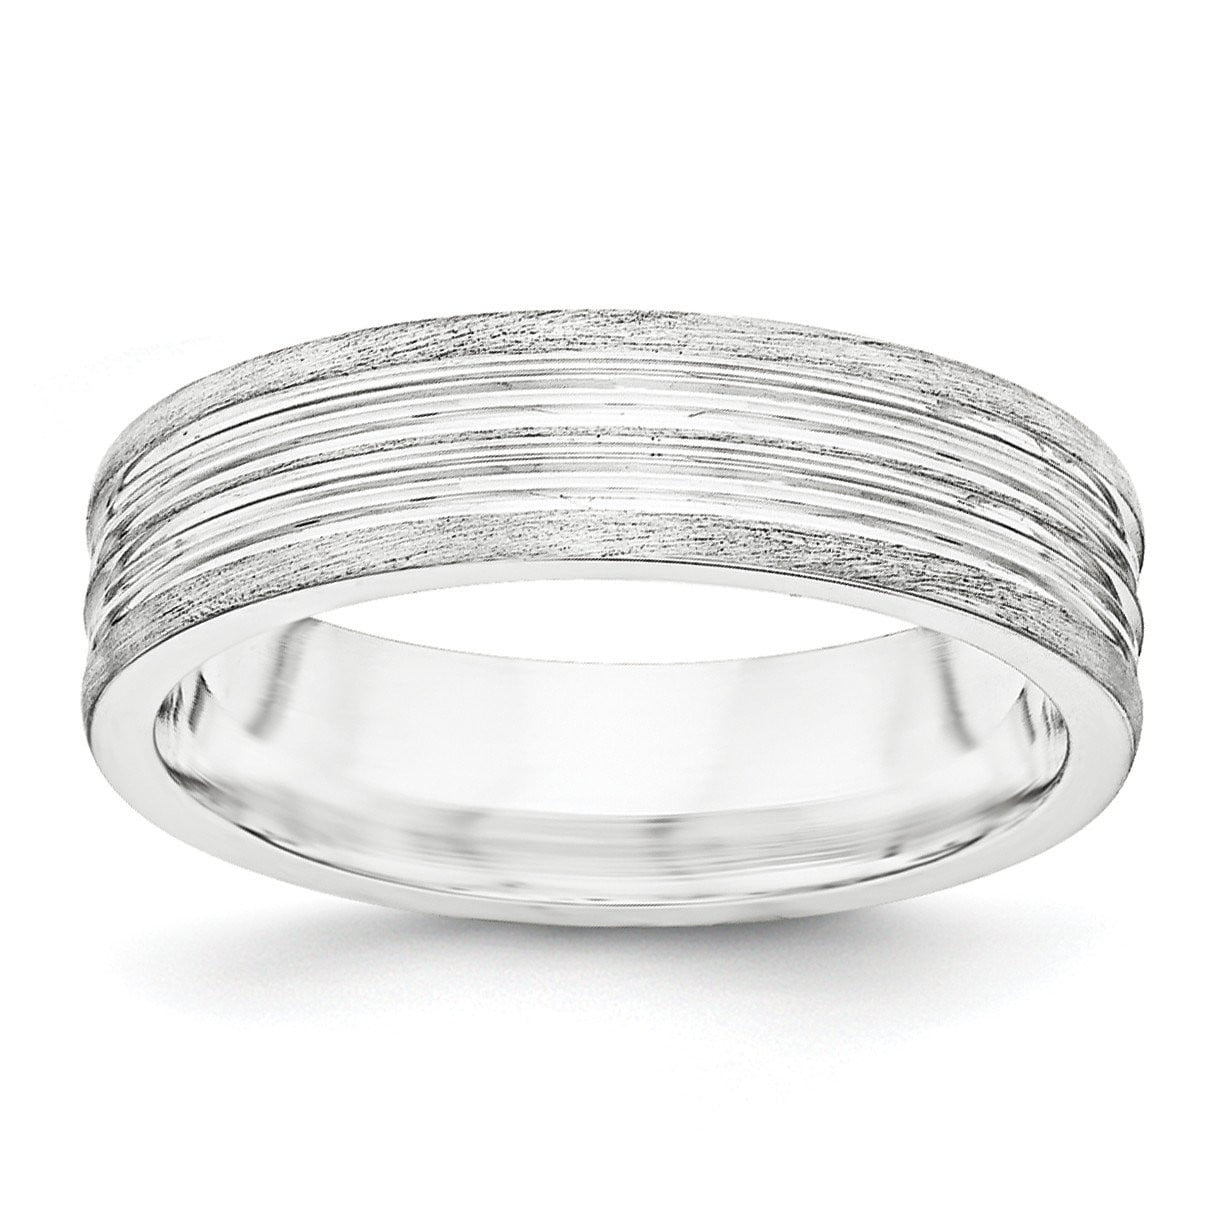 SS 6mm Brushed Fancy Band Size 13.5 - shirin-diamonds